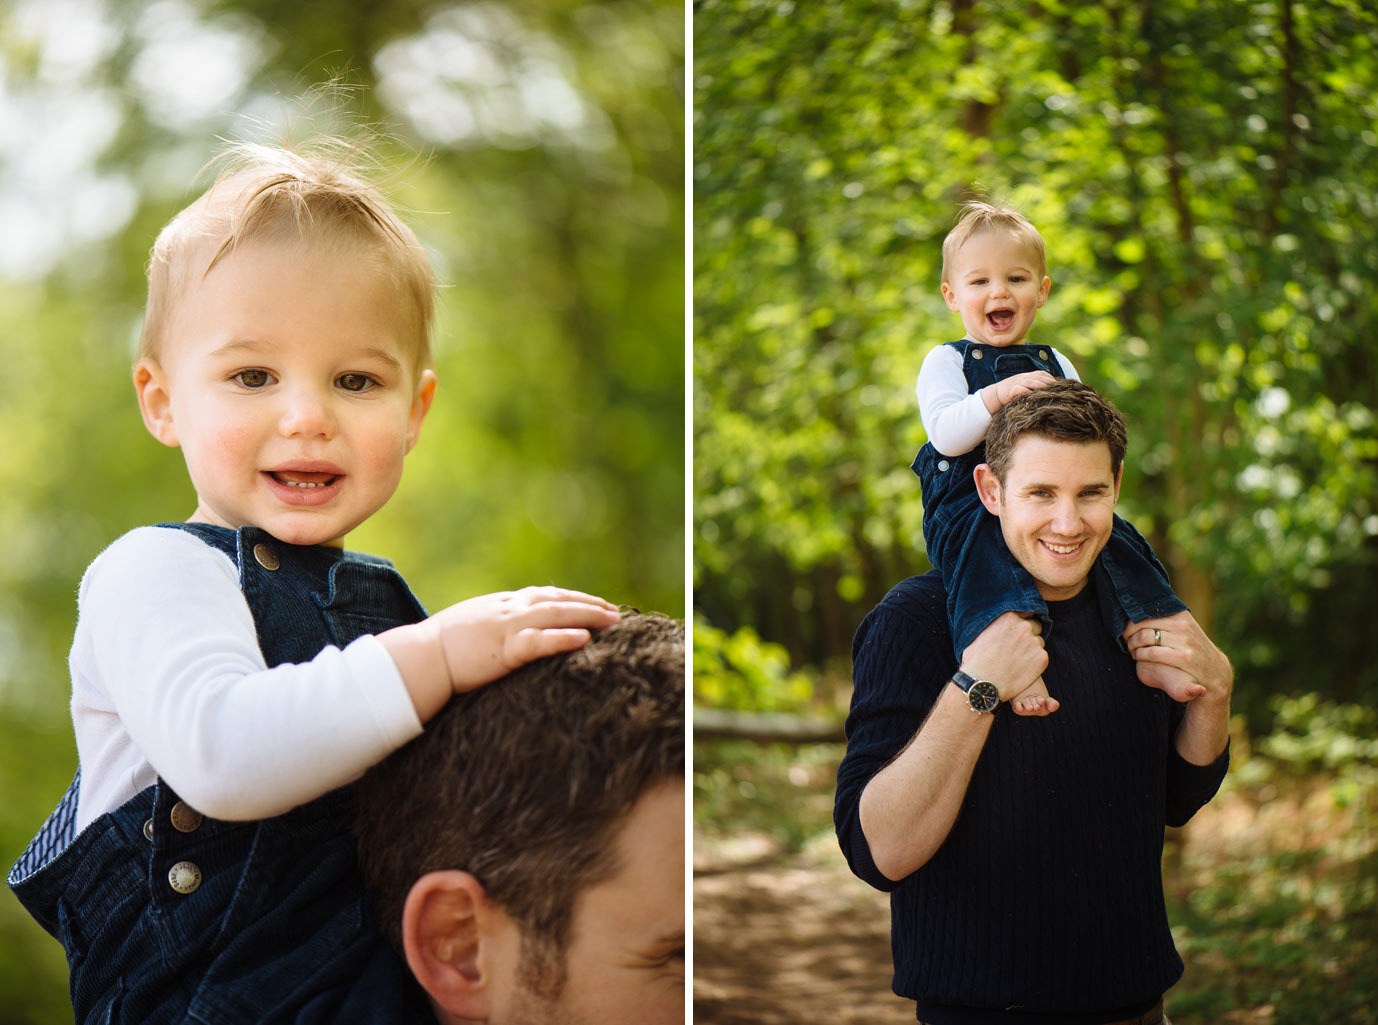 son takes a piggy back ride on dads shoulders